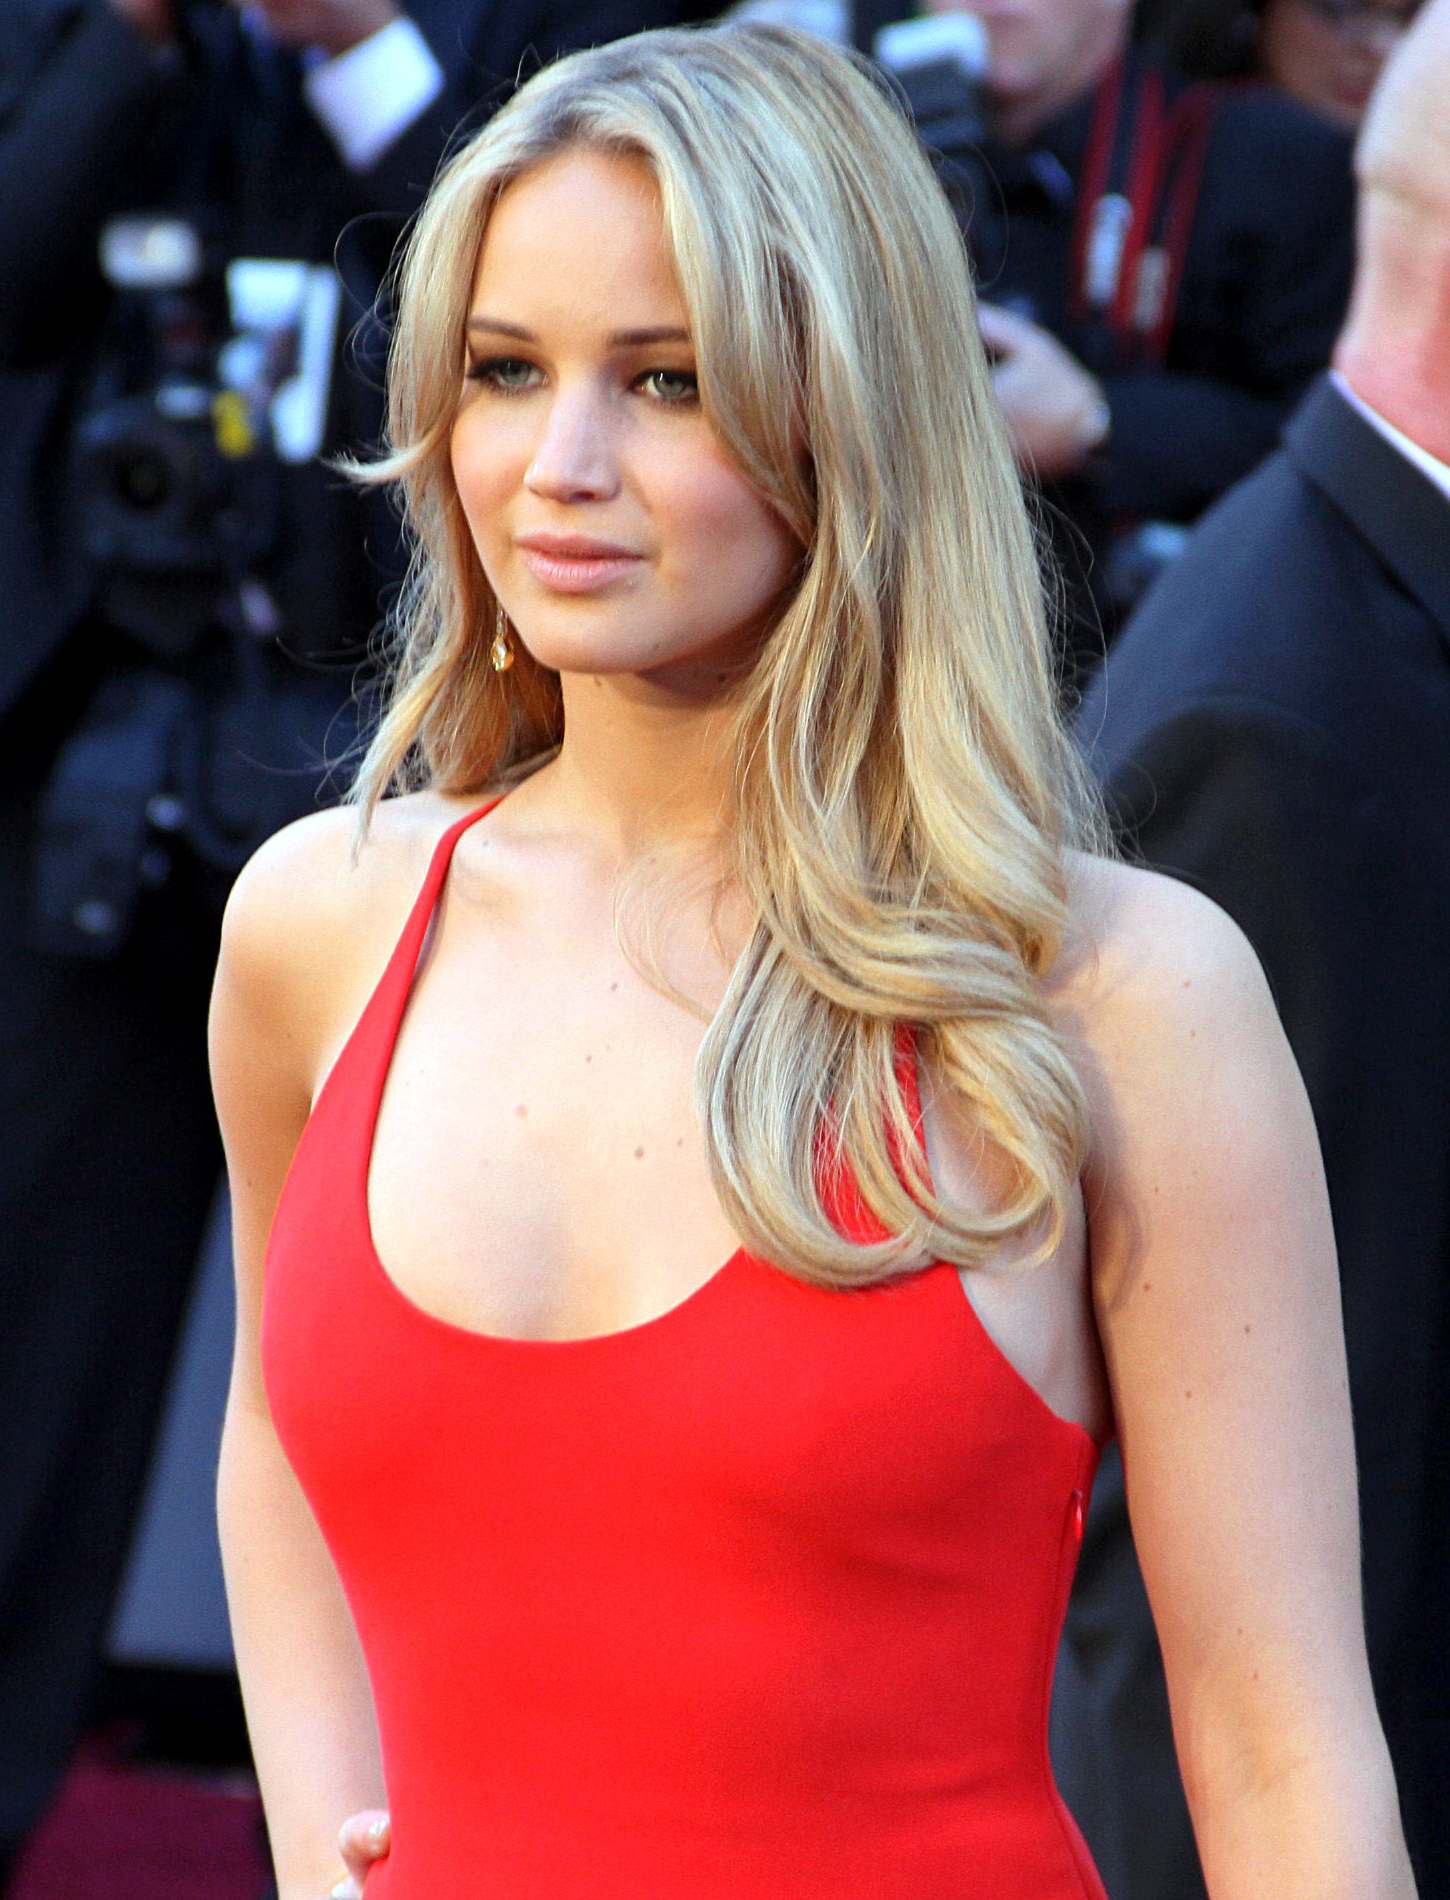 Description jennifer lawrence at the 83rd academy awards crop